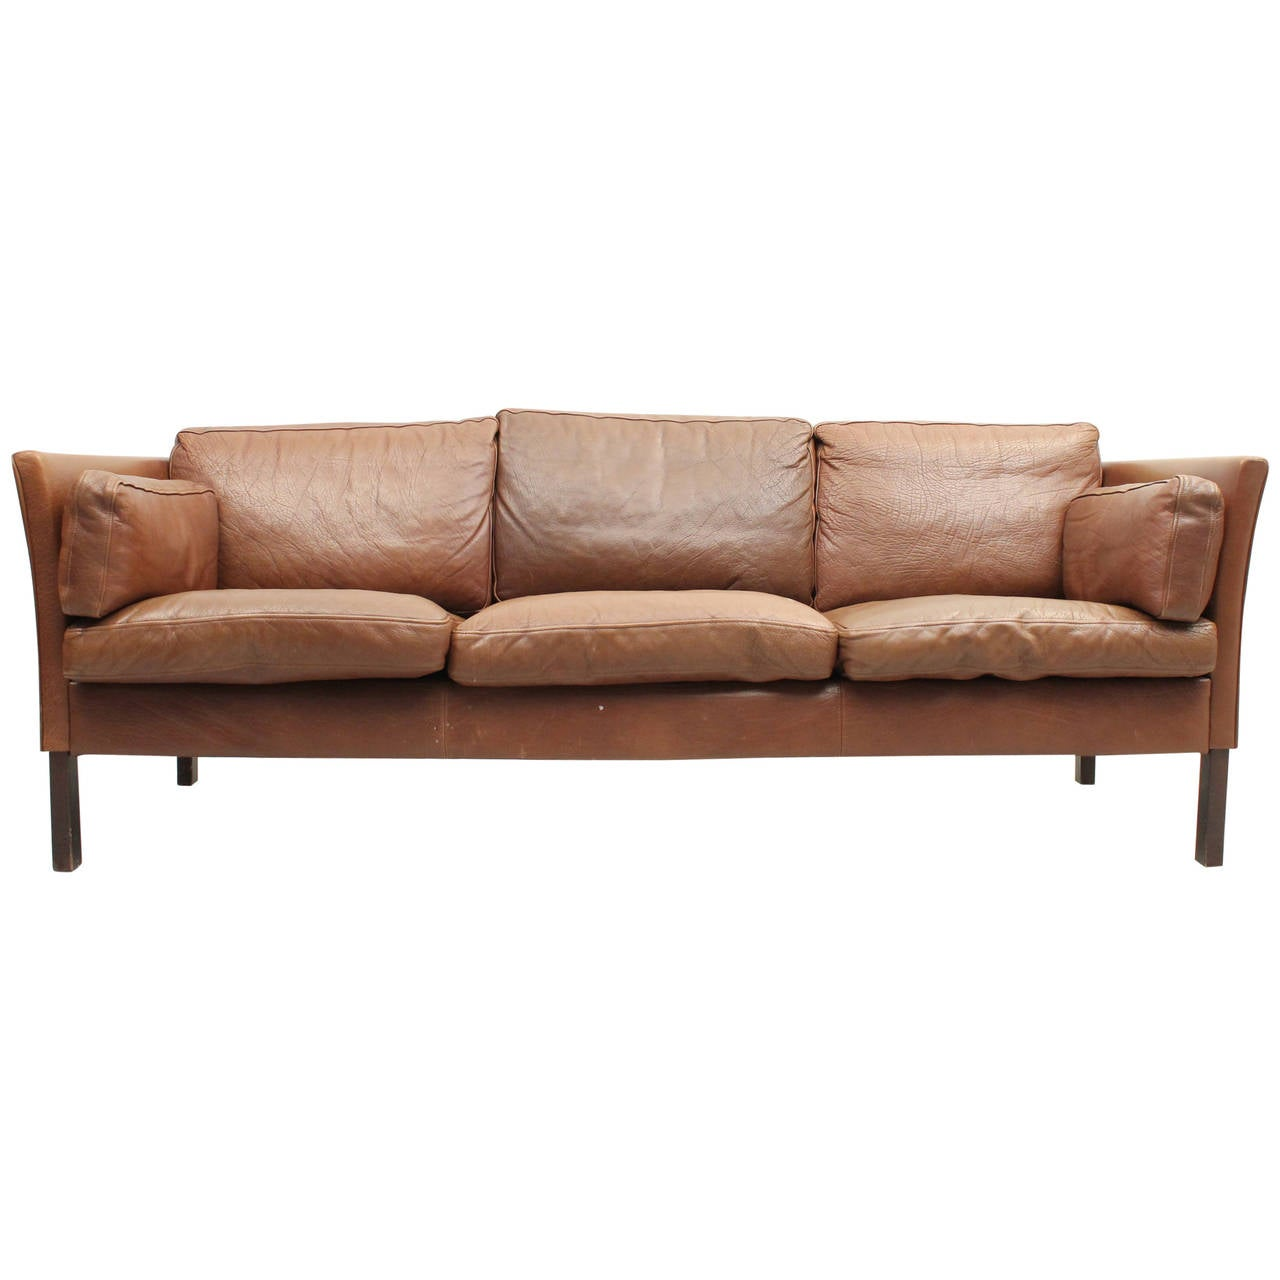 Bon Danish Mid Century Modern Leather Sofa For Sale